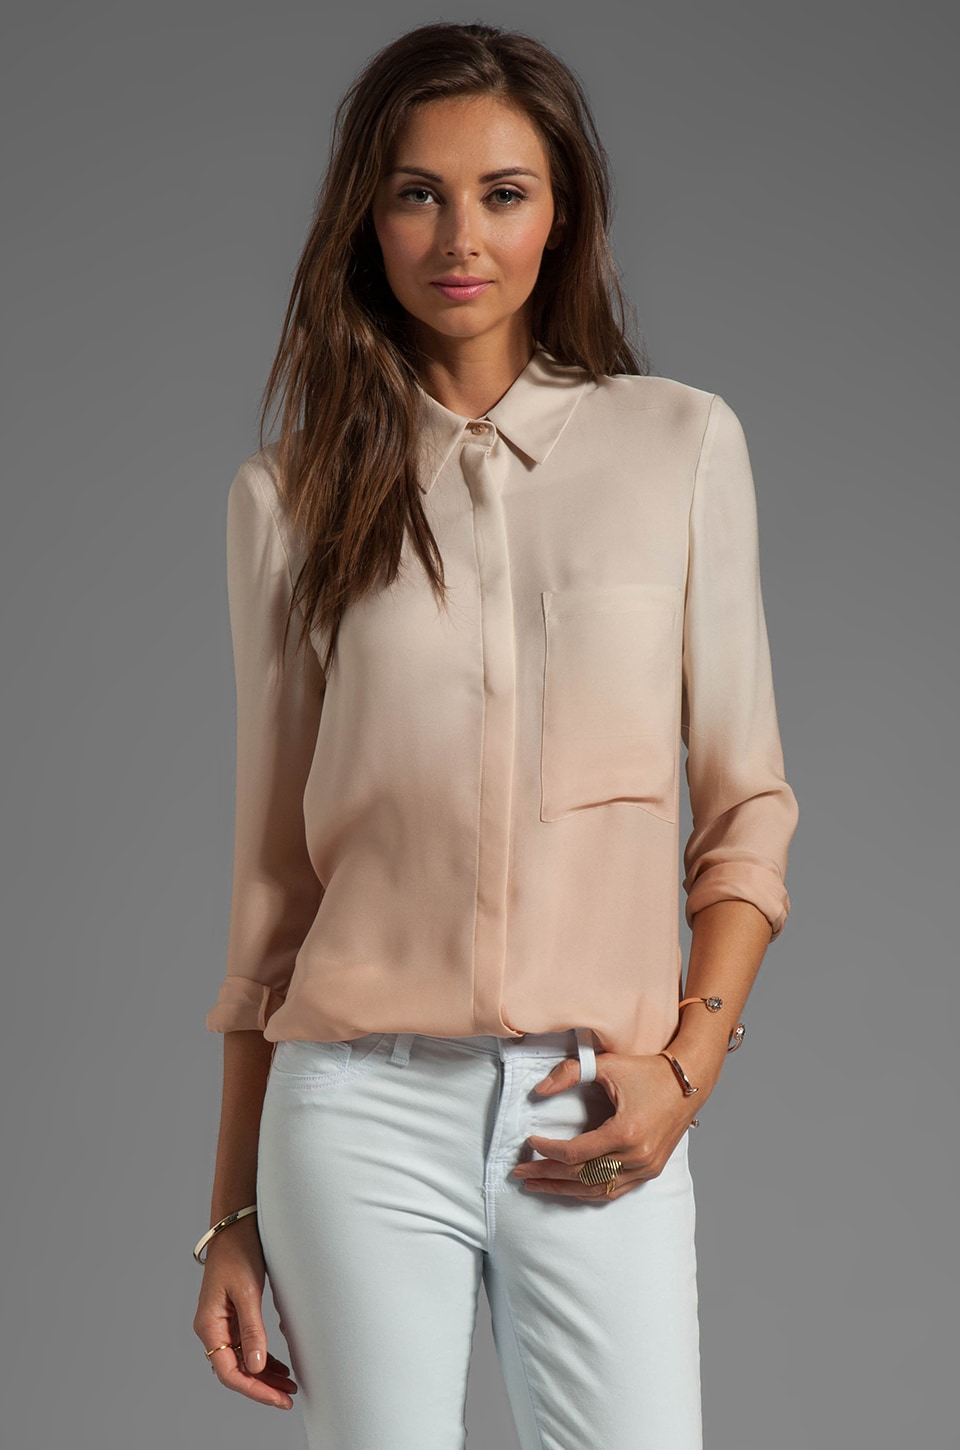 Haute Hippie Button Down Ombre Blouse in Vanilla/Praline